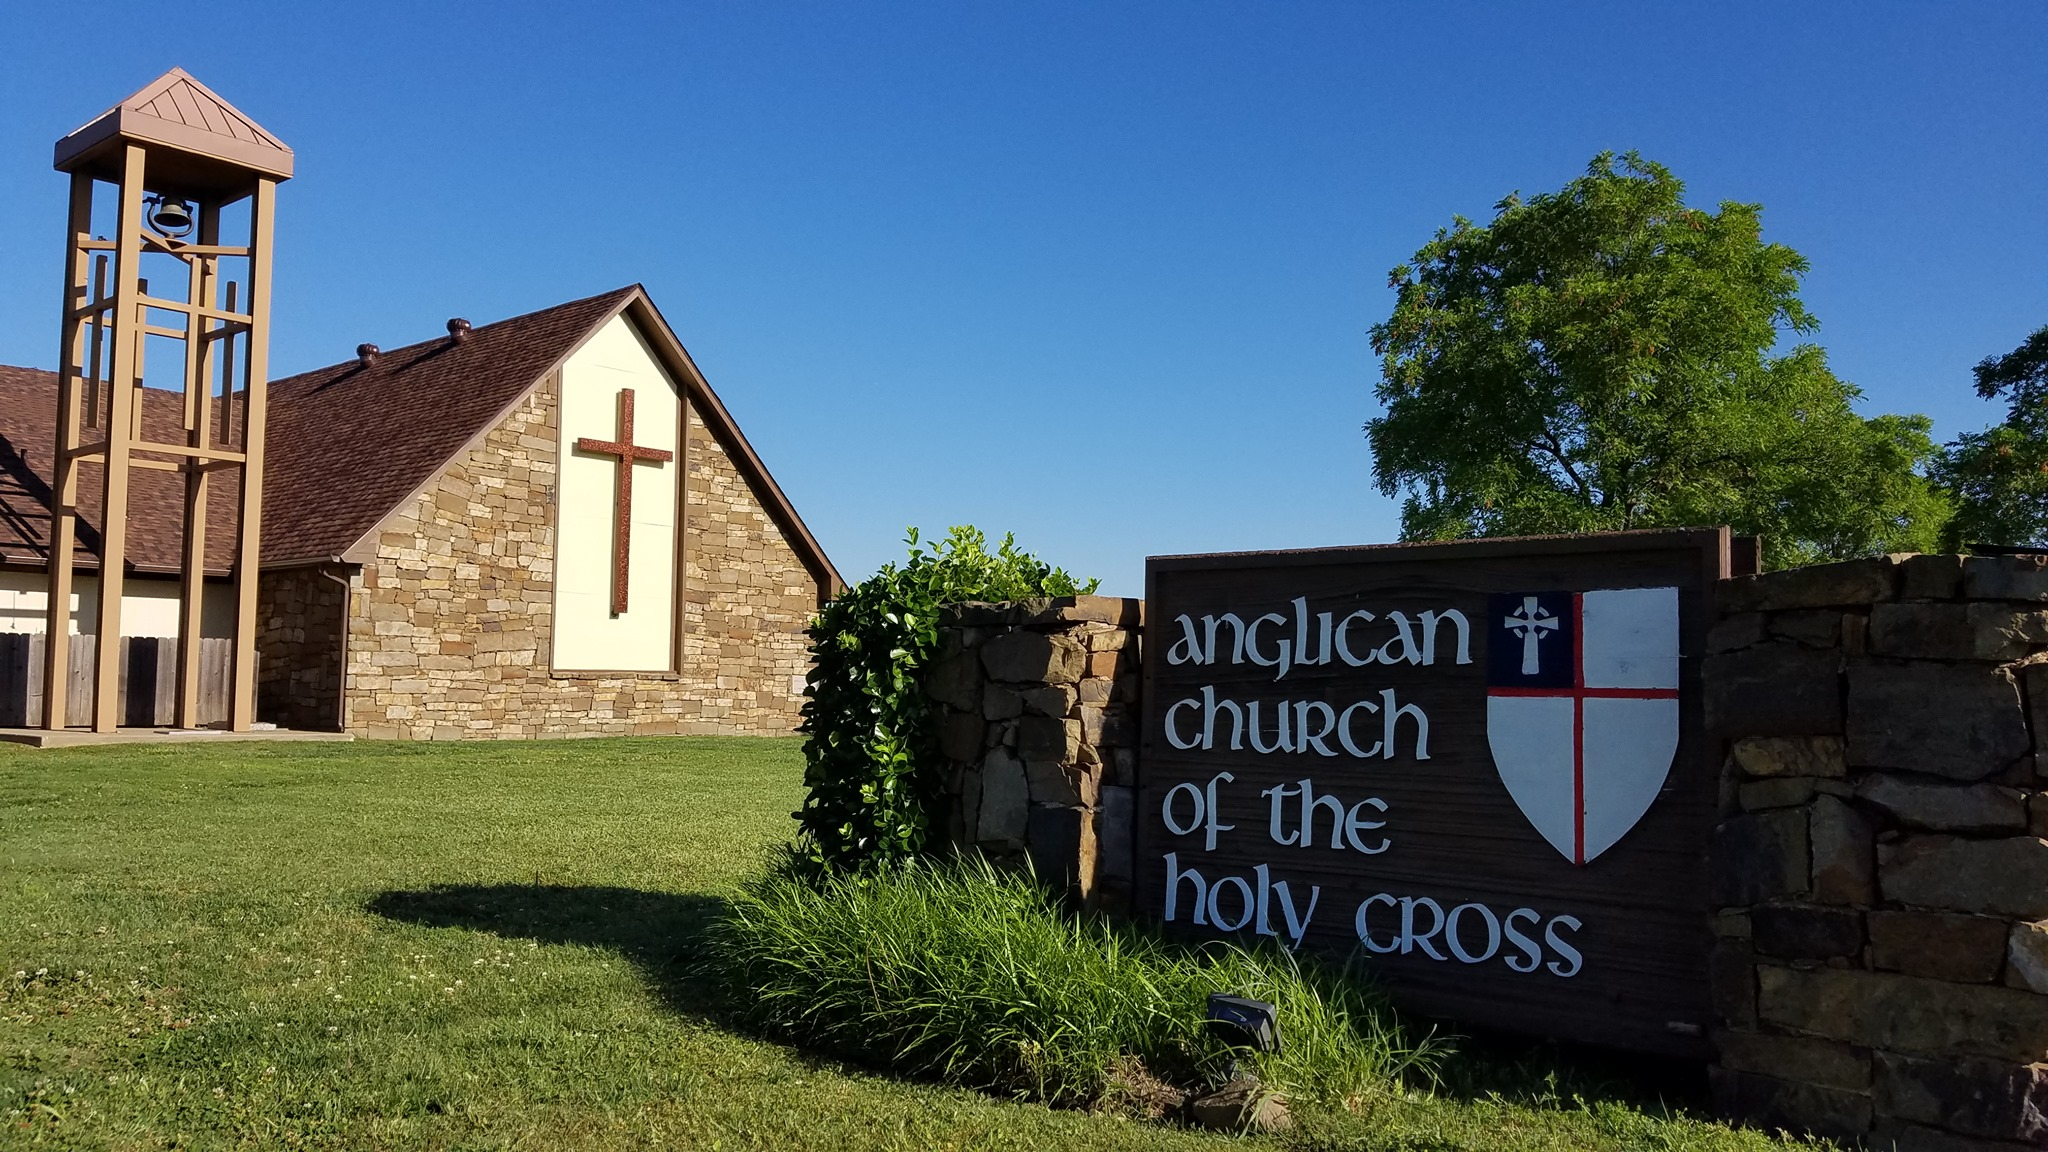 Anglican Church of the Holy Cross